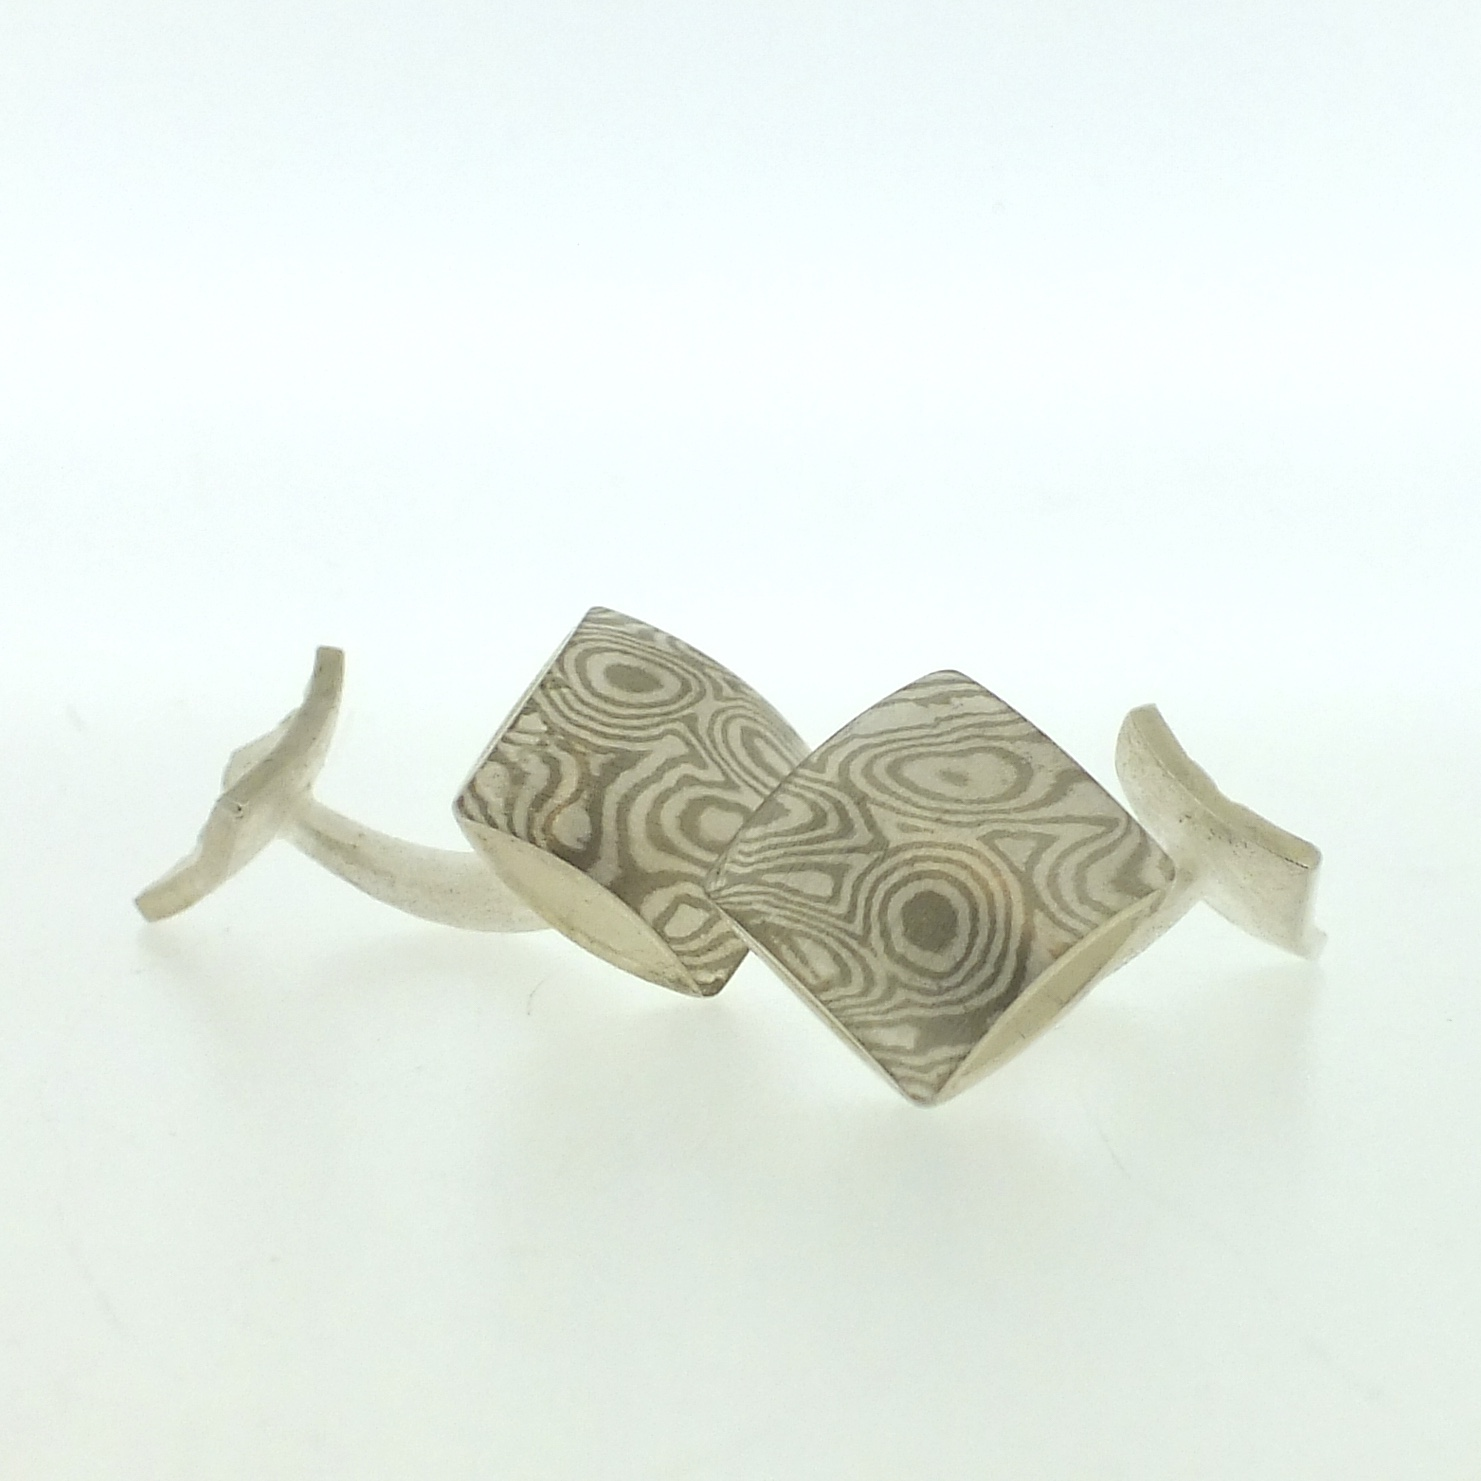 18k white gold and silver mokume gane square pillow cufflinks